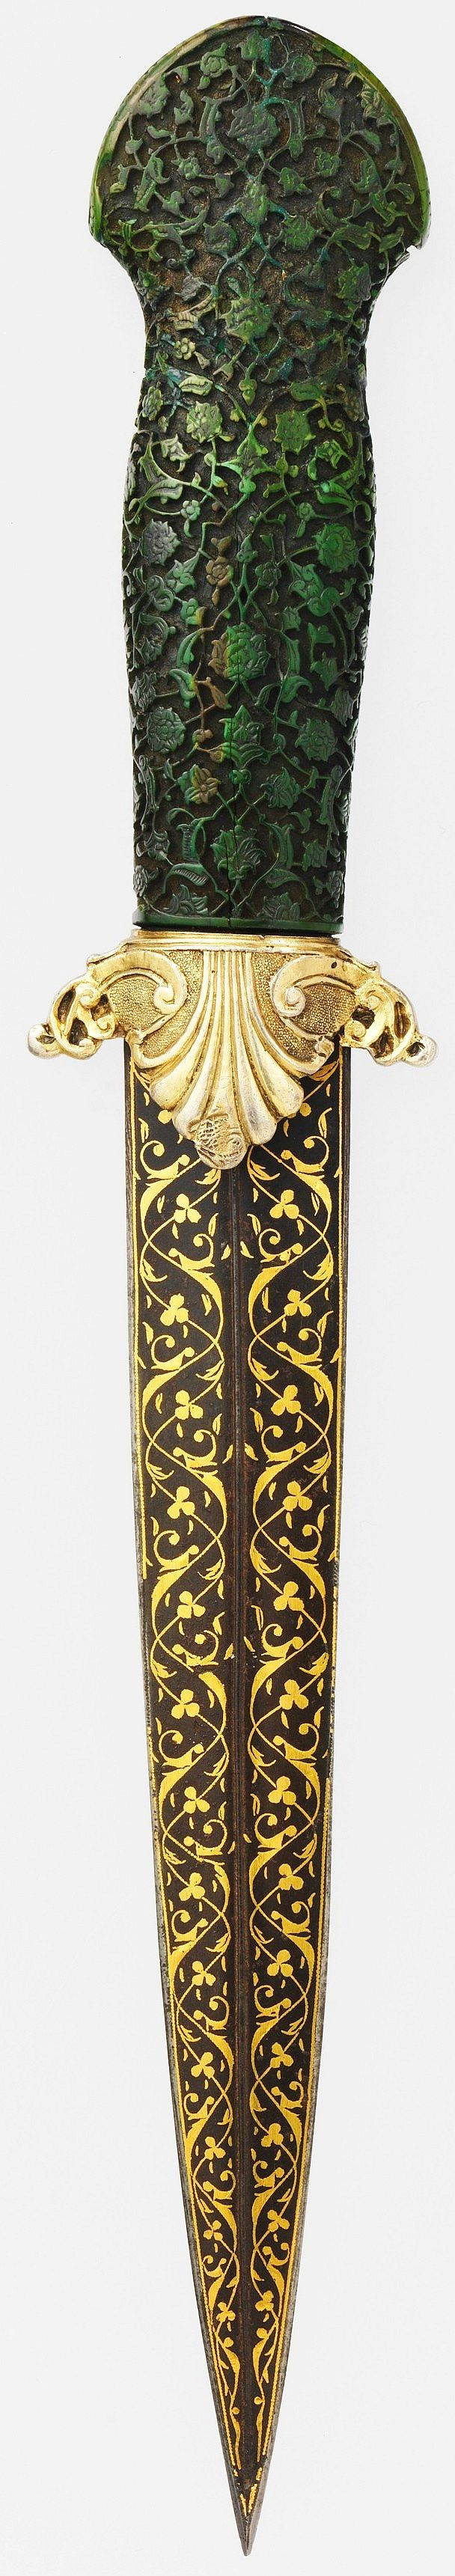 "Ottoman dagger, 16th c (grip and blade), guard 1774–89, steel, ivory, gold; silver-gilt, L. 12 1/4 in. (31.12 cm); blade L. 7 1/2 in. (19.1 cm), Met Museum, Bequest of George C. Stone, 1935. The ivory grip is carved in the manner of objects made for the Ottoman court, blade inscribed in Turkish and Persian (Ottoman court languages) ""I besought a drink of water from your trenchant dagger, what if but once you should let me drink, what would you lose? If I thirst, his dagger is not laid down""."